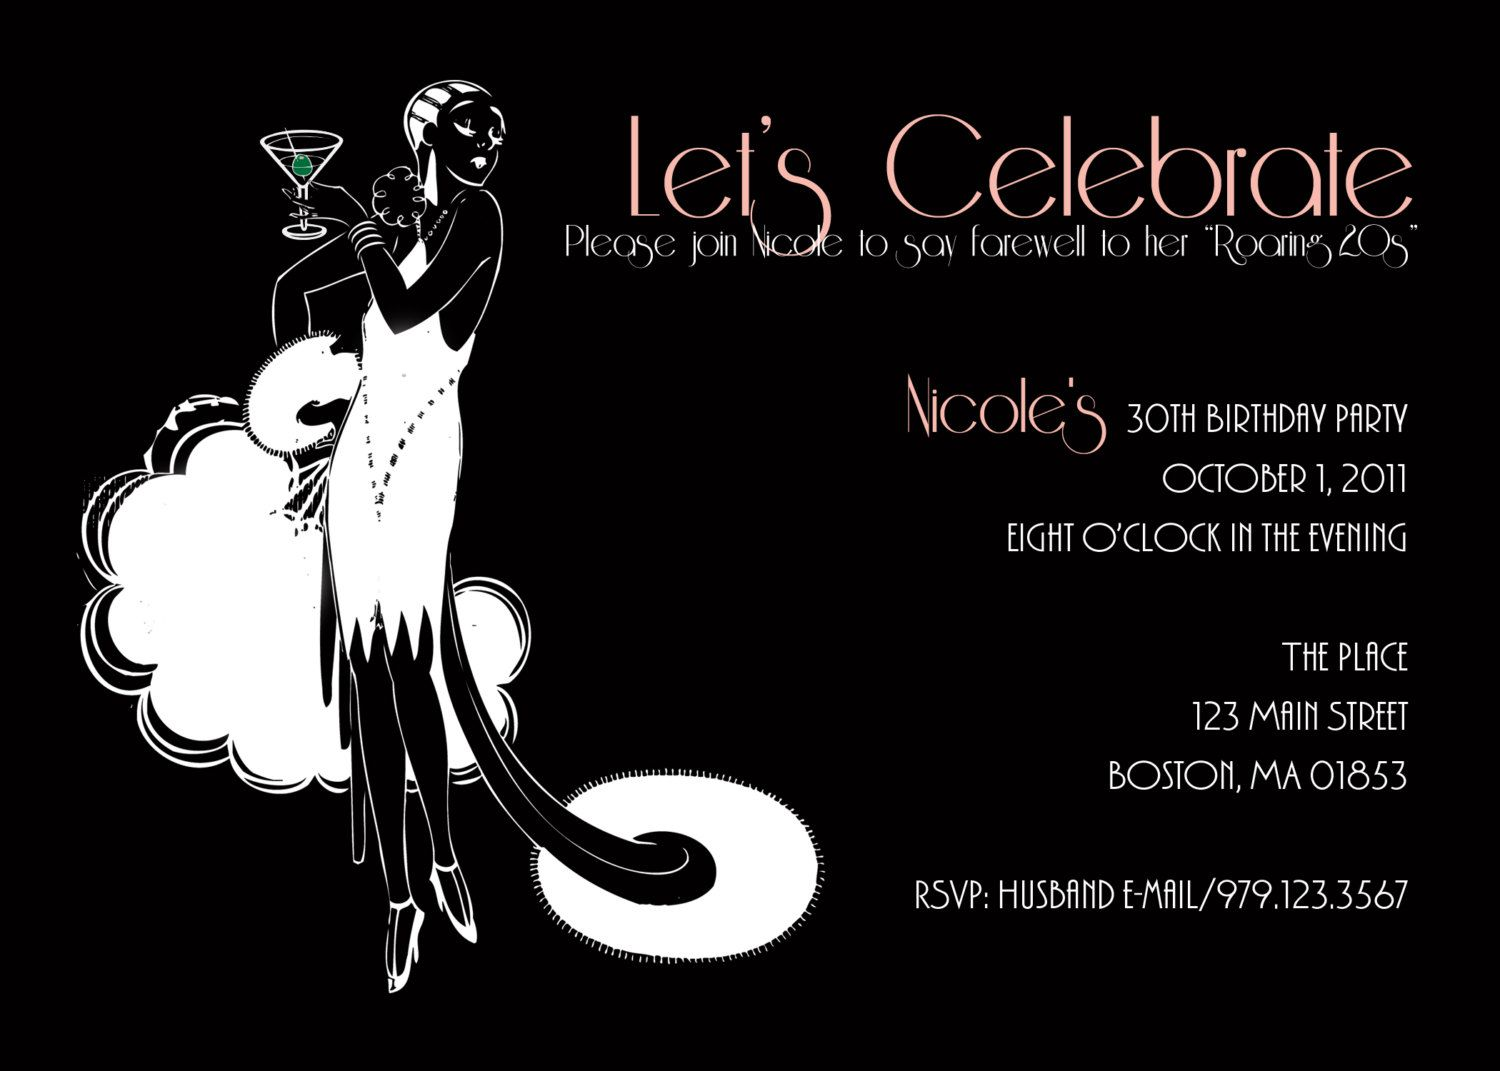 Roaring 20s flapper 30th birthday invitation 1500 via Etsy – 30th Birthday Party Invitation Wording Samples